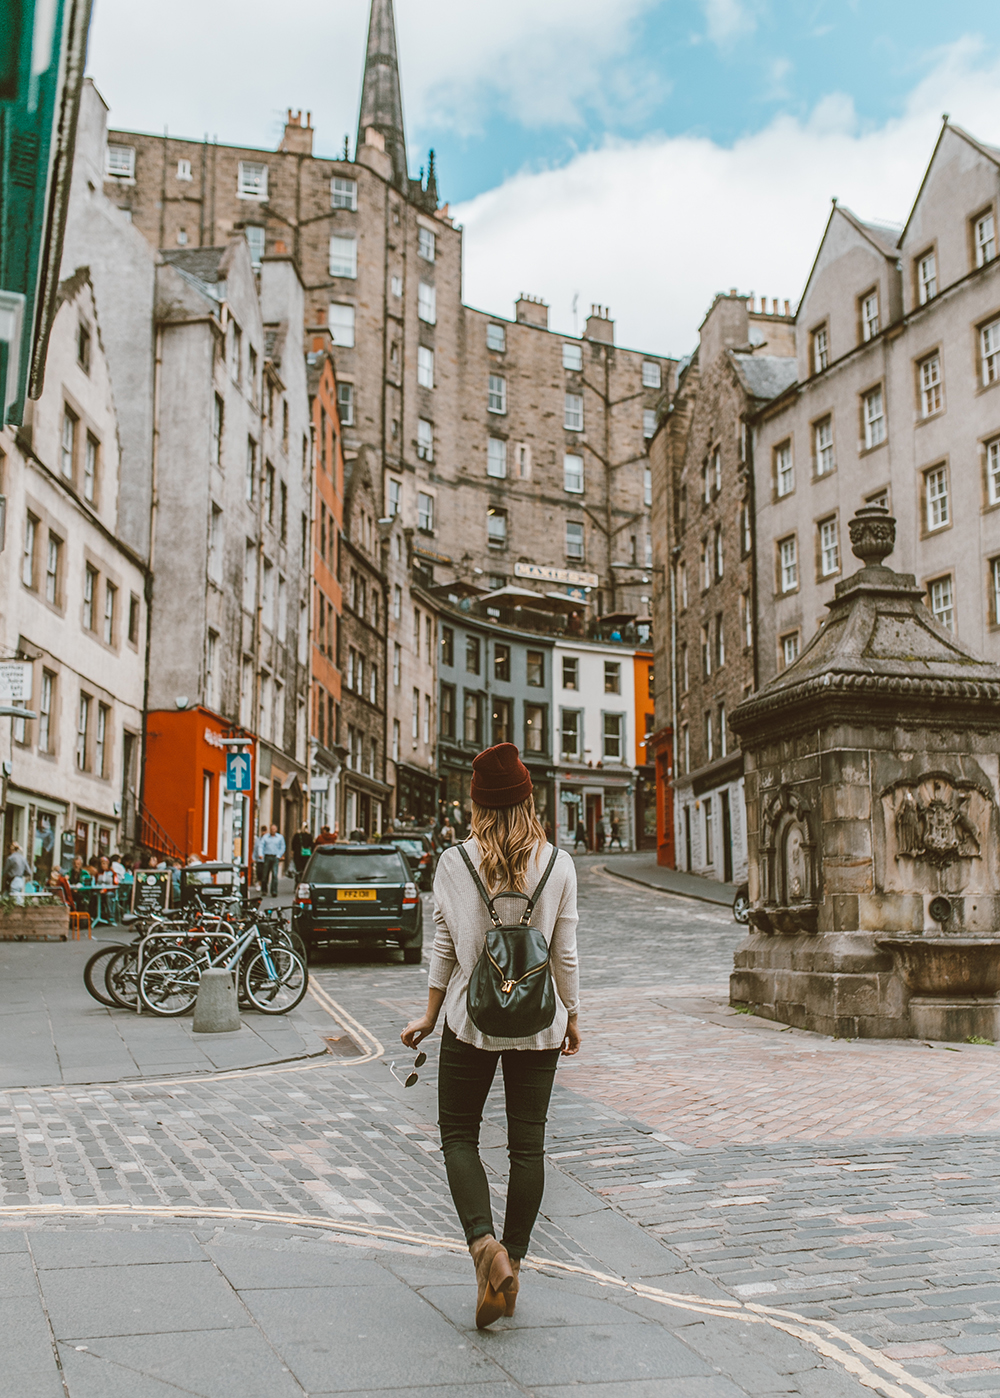 livvyland-blog-olivia-watson-things-to-do-edinburgh-scotland-day-trip-victoria-street